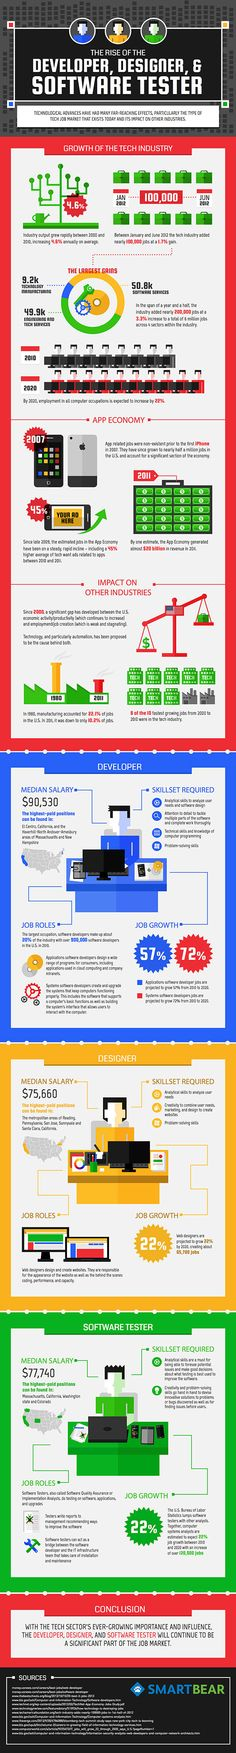 The-rise-of-the-developer-designer-and-software-tester-infographic-copy